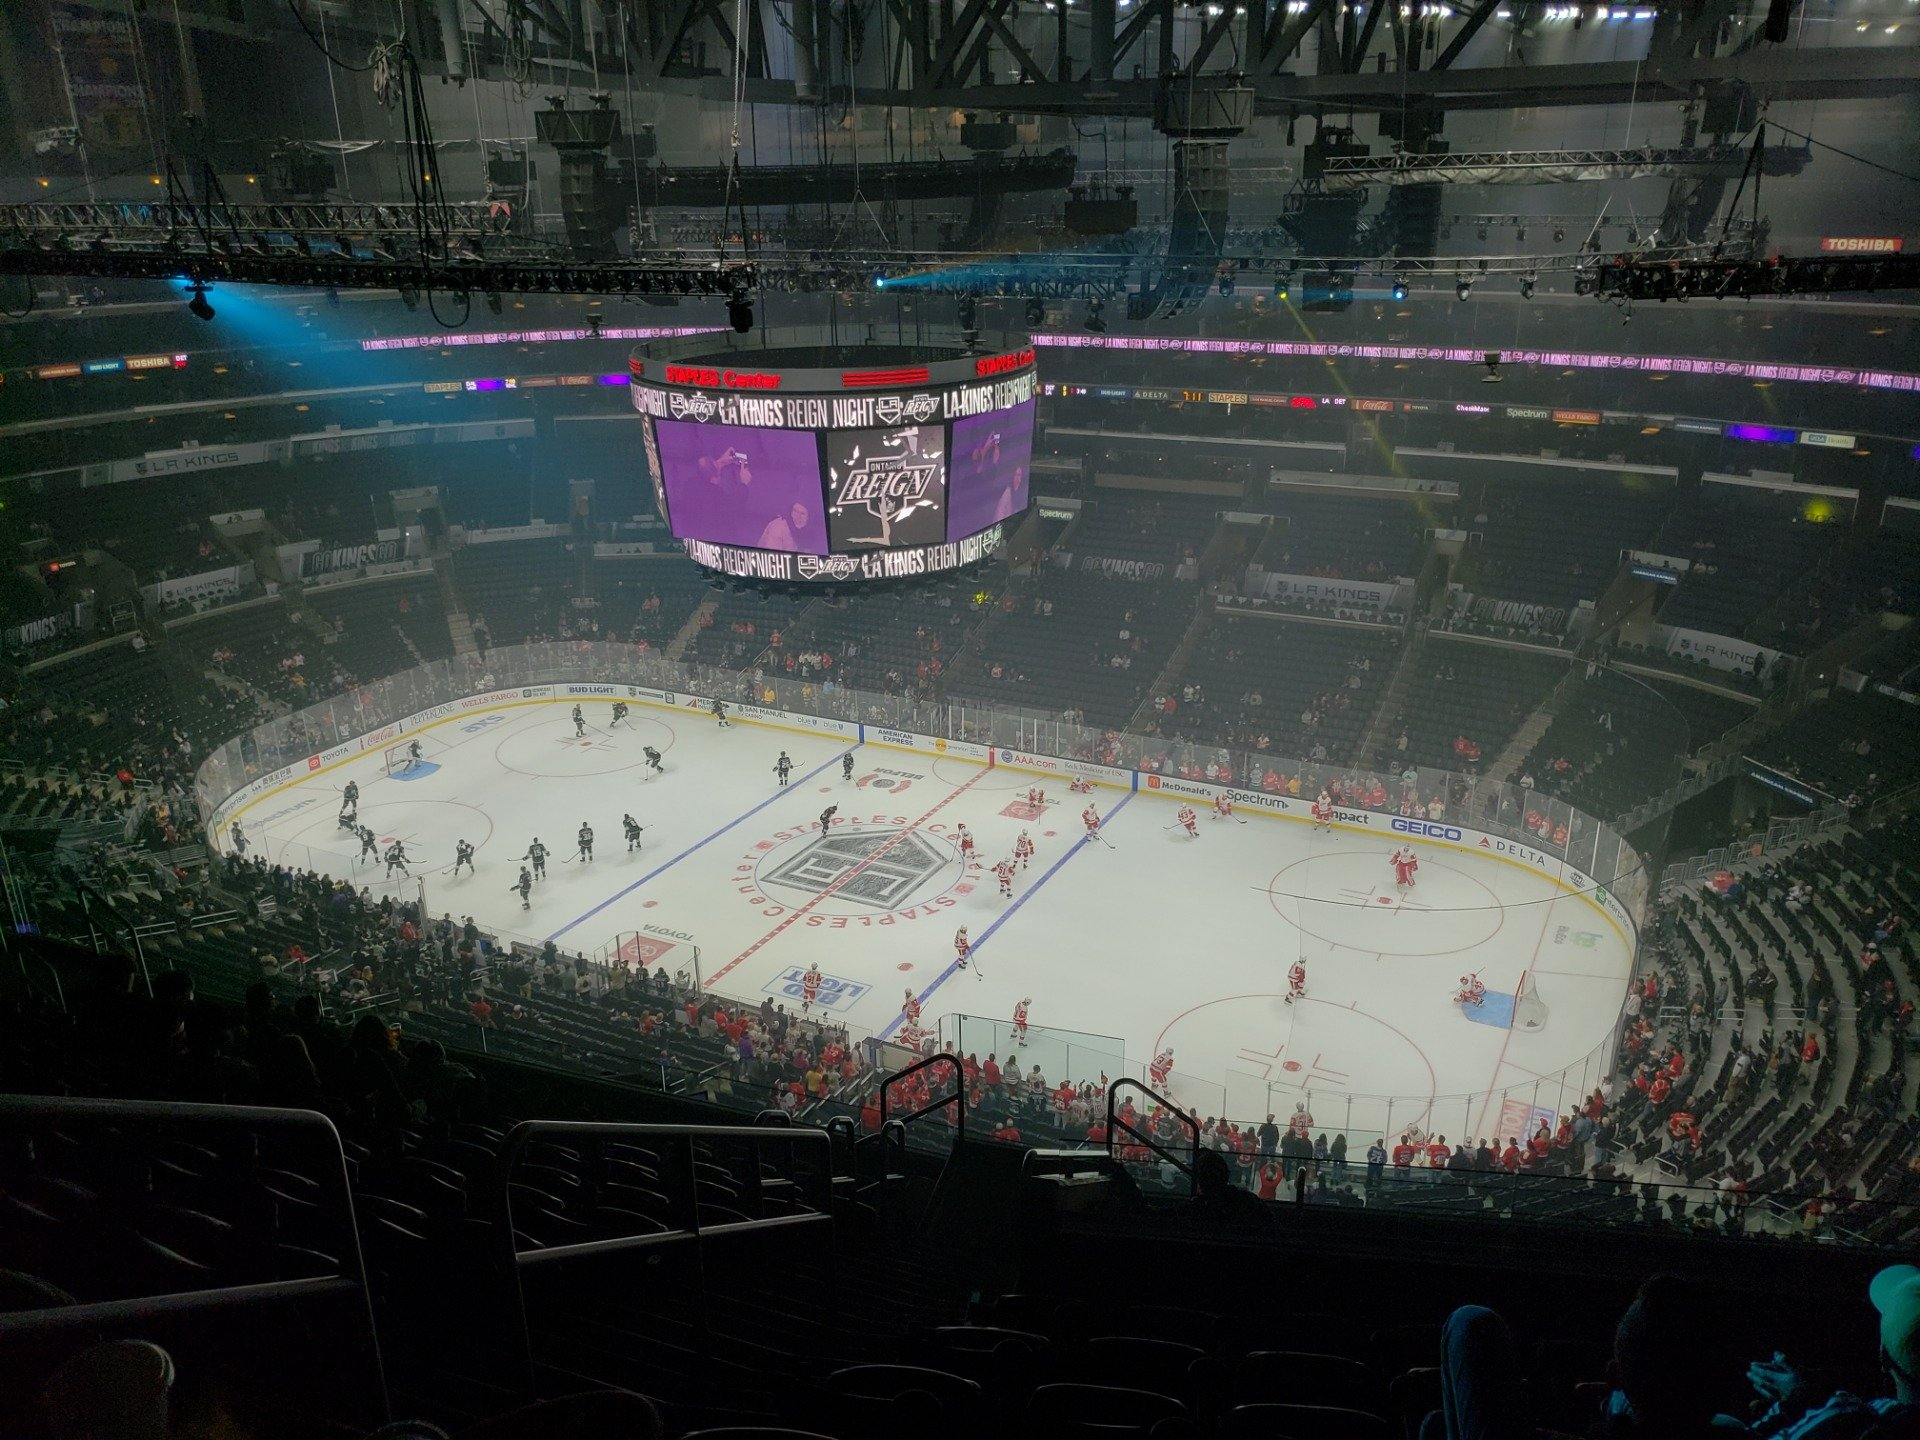 Staples Center Section 332 Row 12 Seat 19